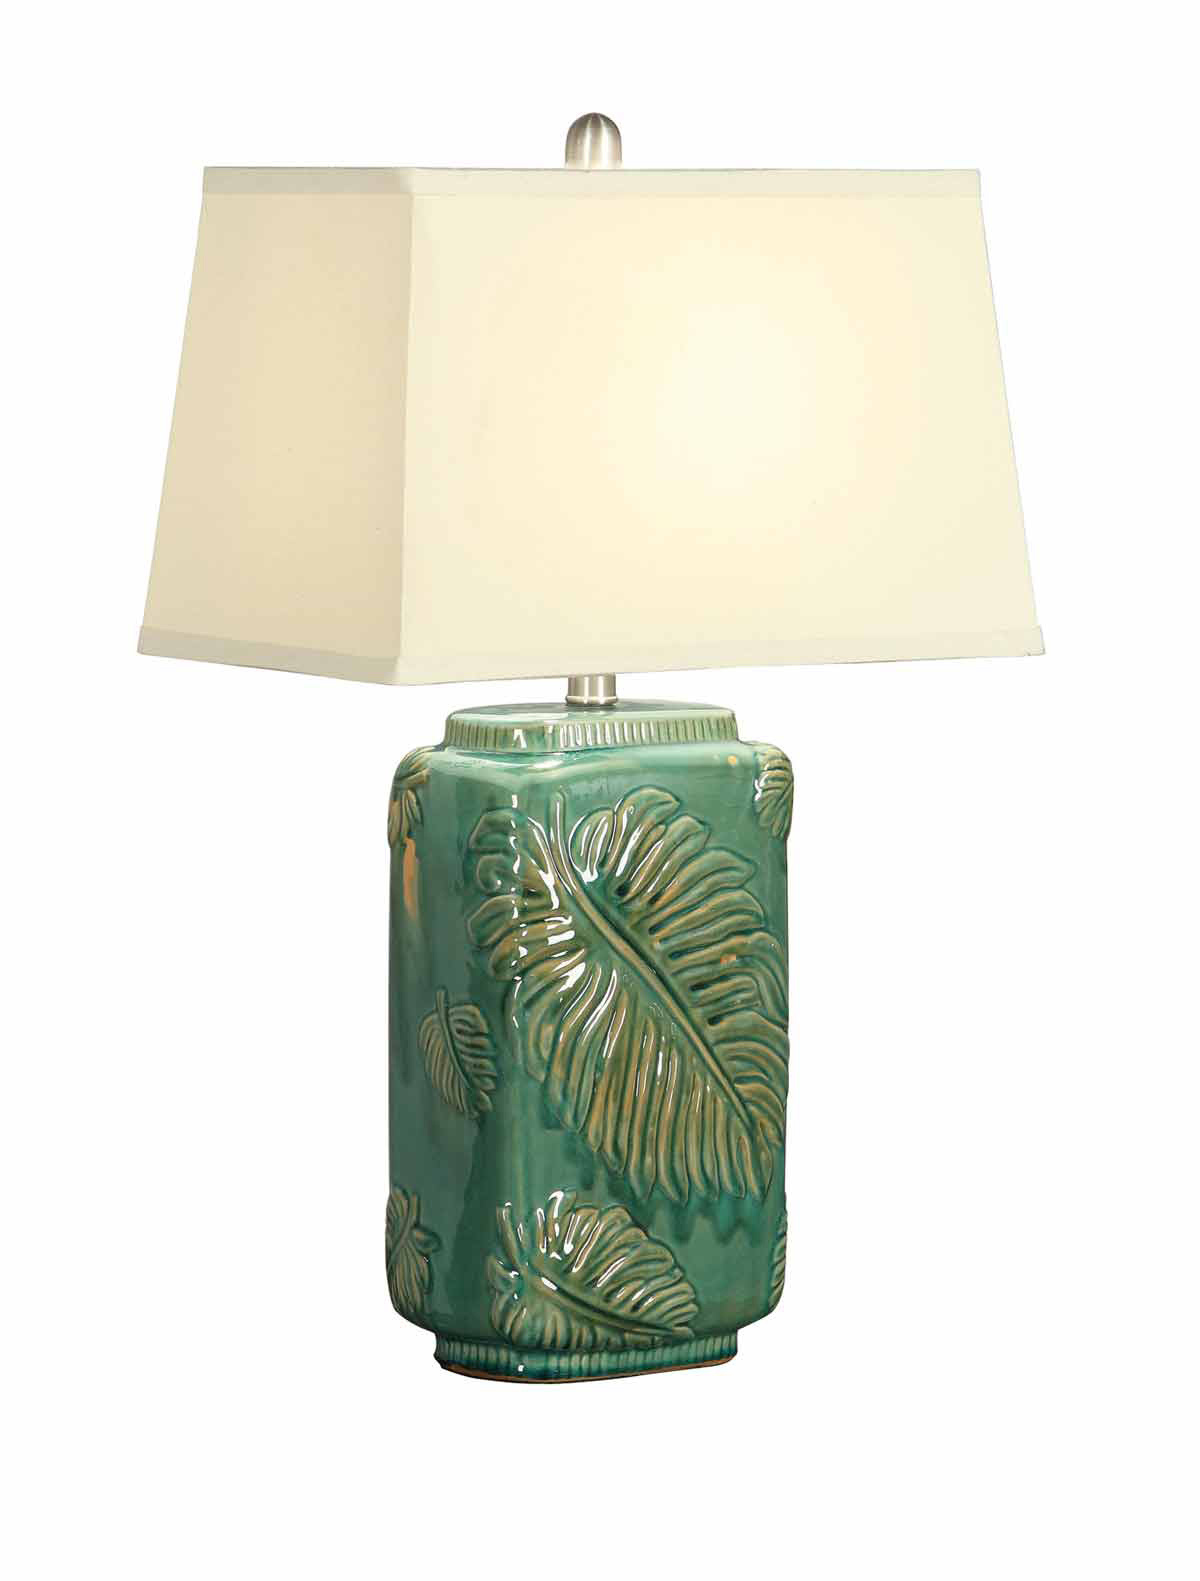 Coaster 901515 Table Lamp - Green